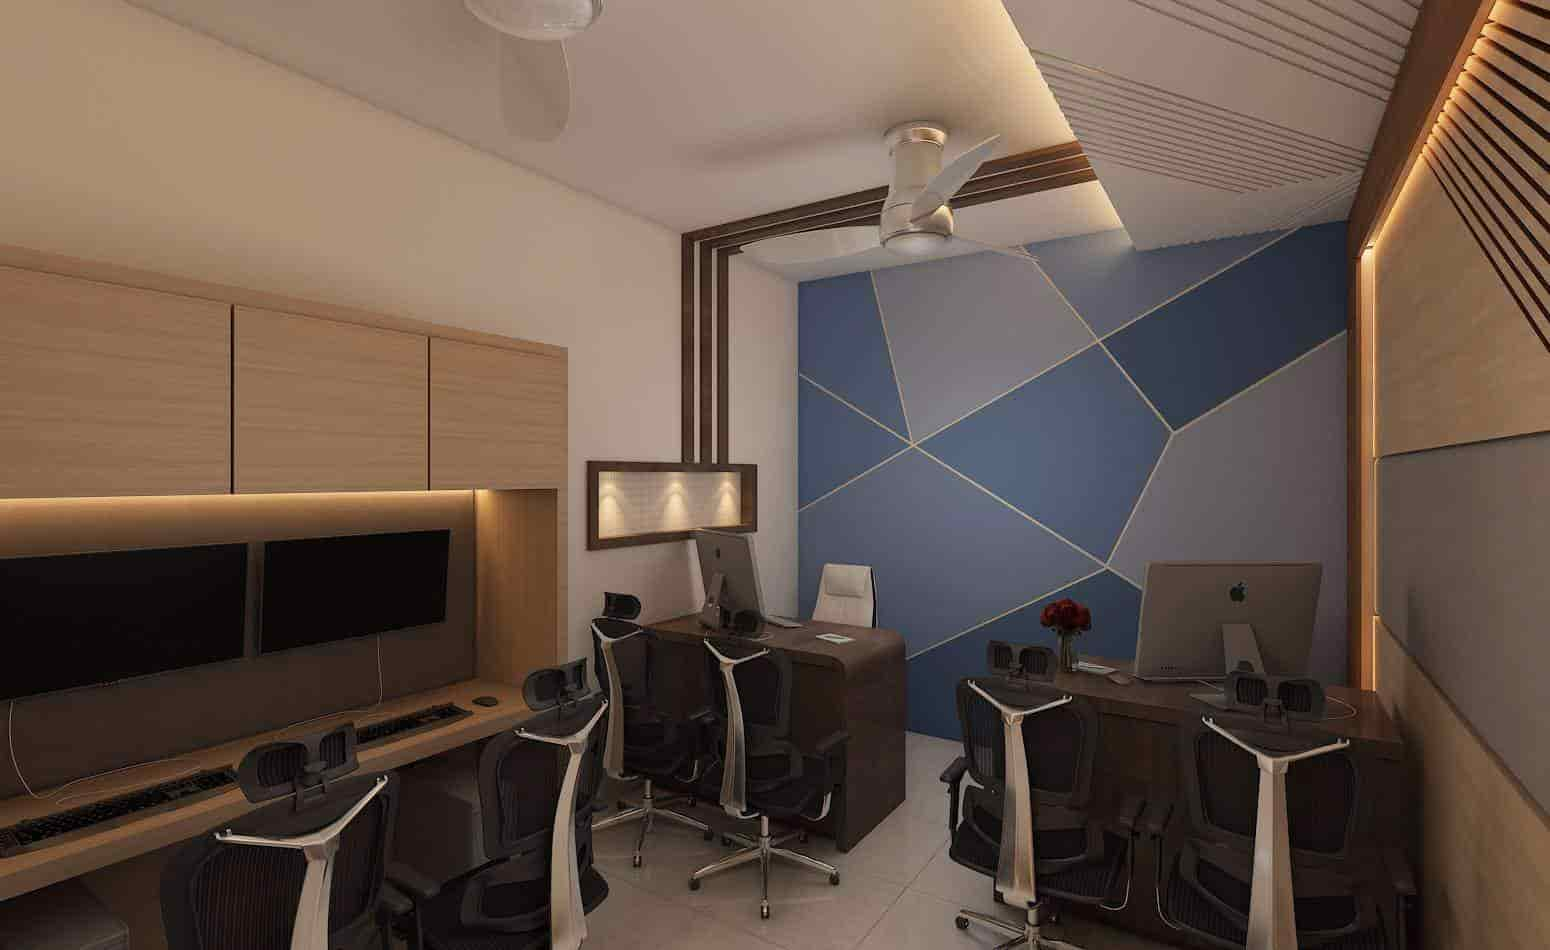 New era interior concepts manjalpur interior design for Interior designer 7